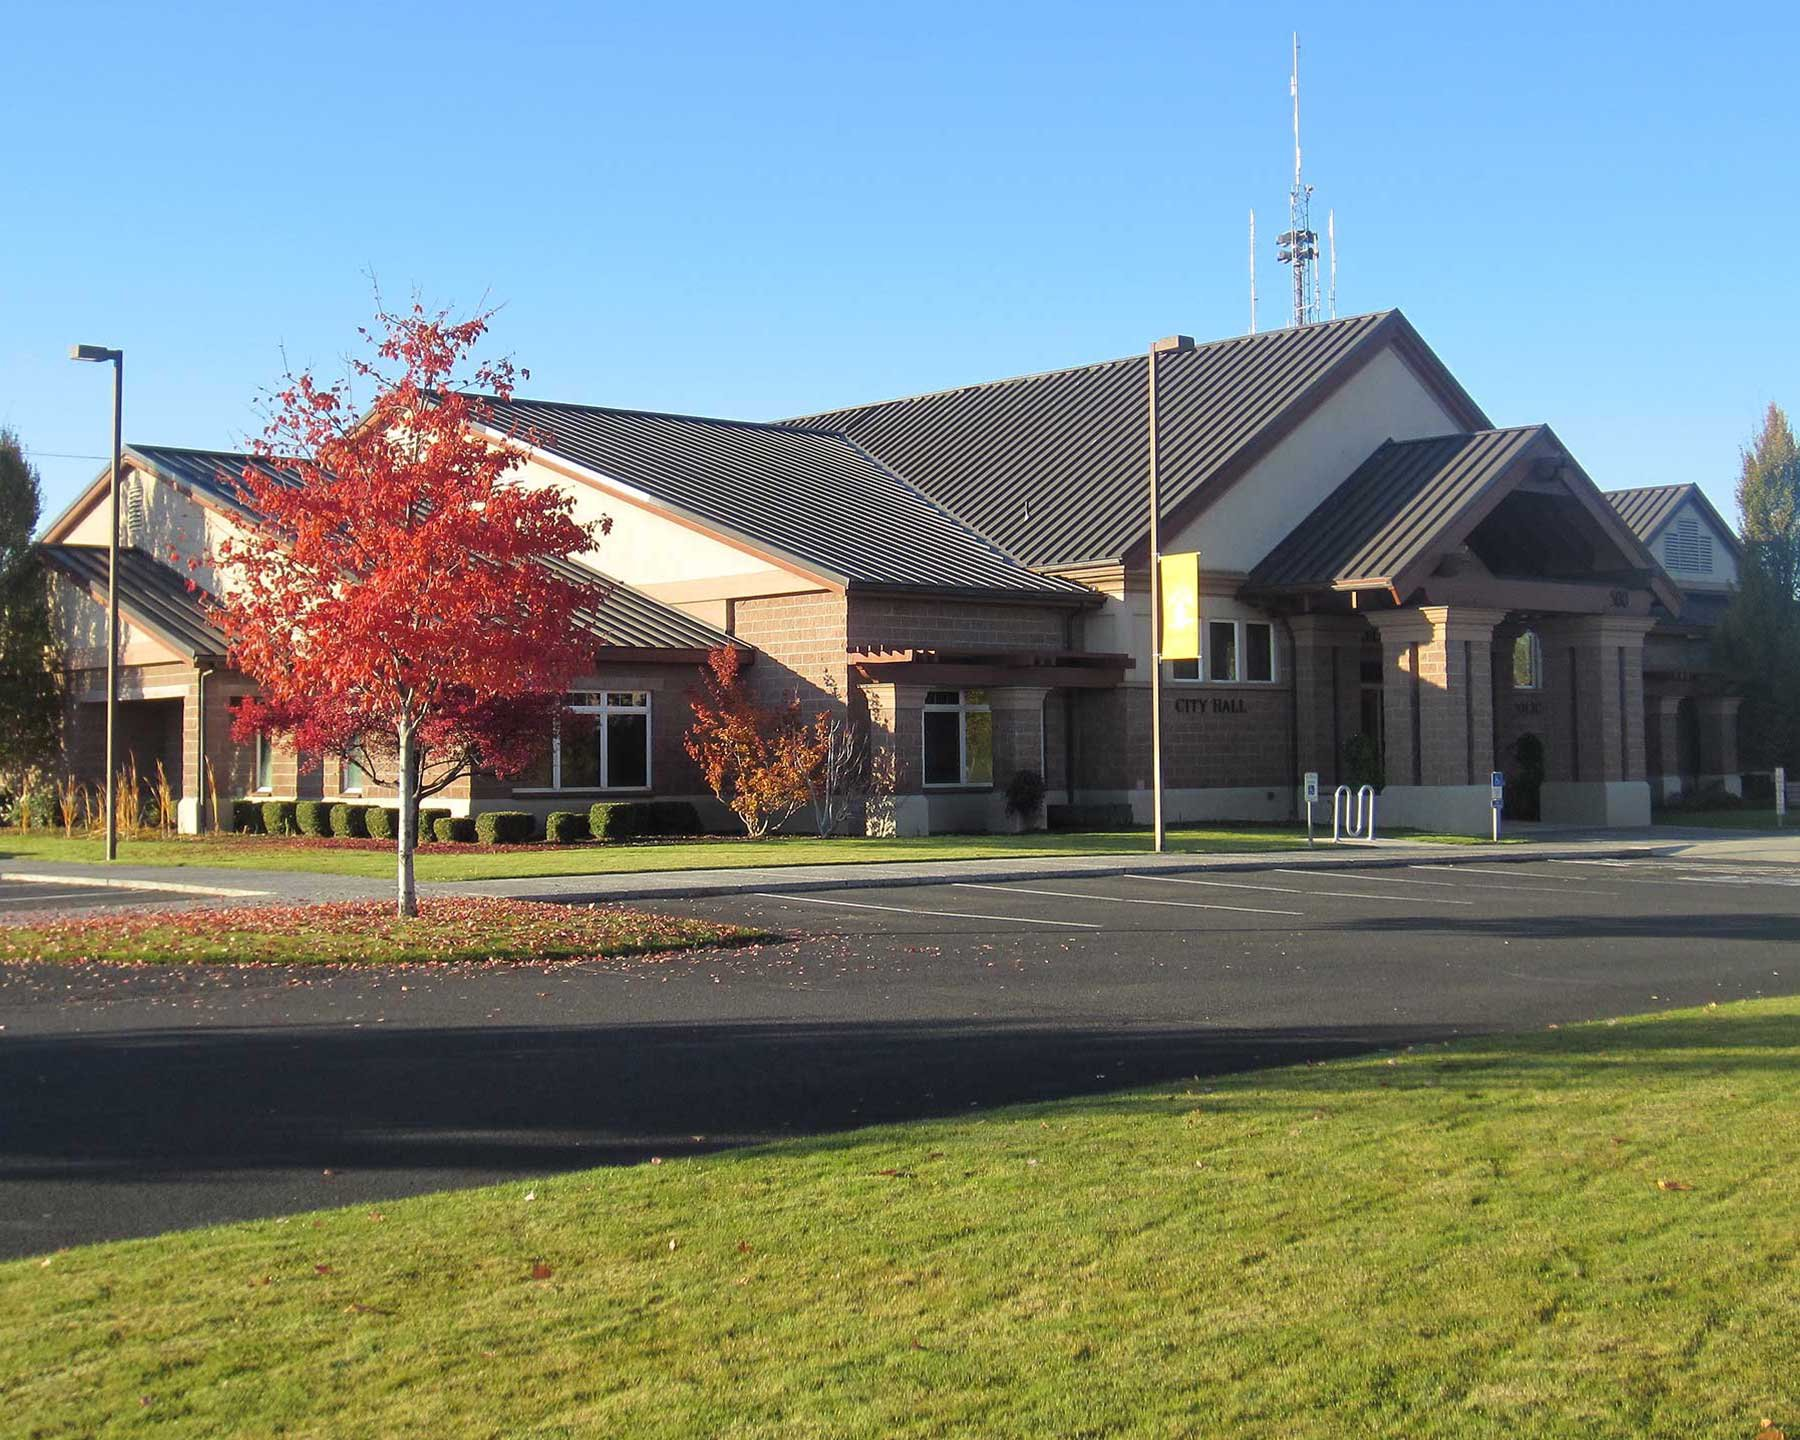 official website of the city of othello washington